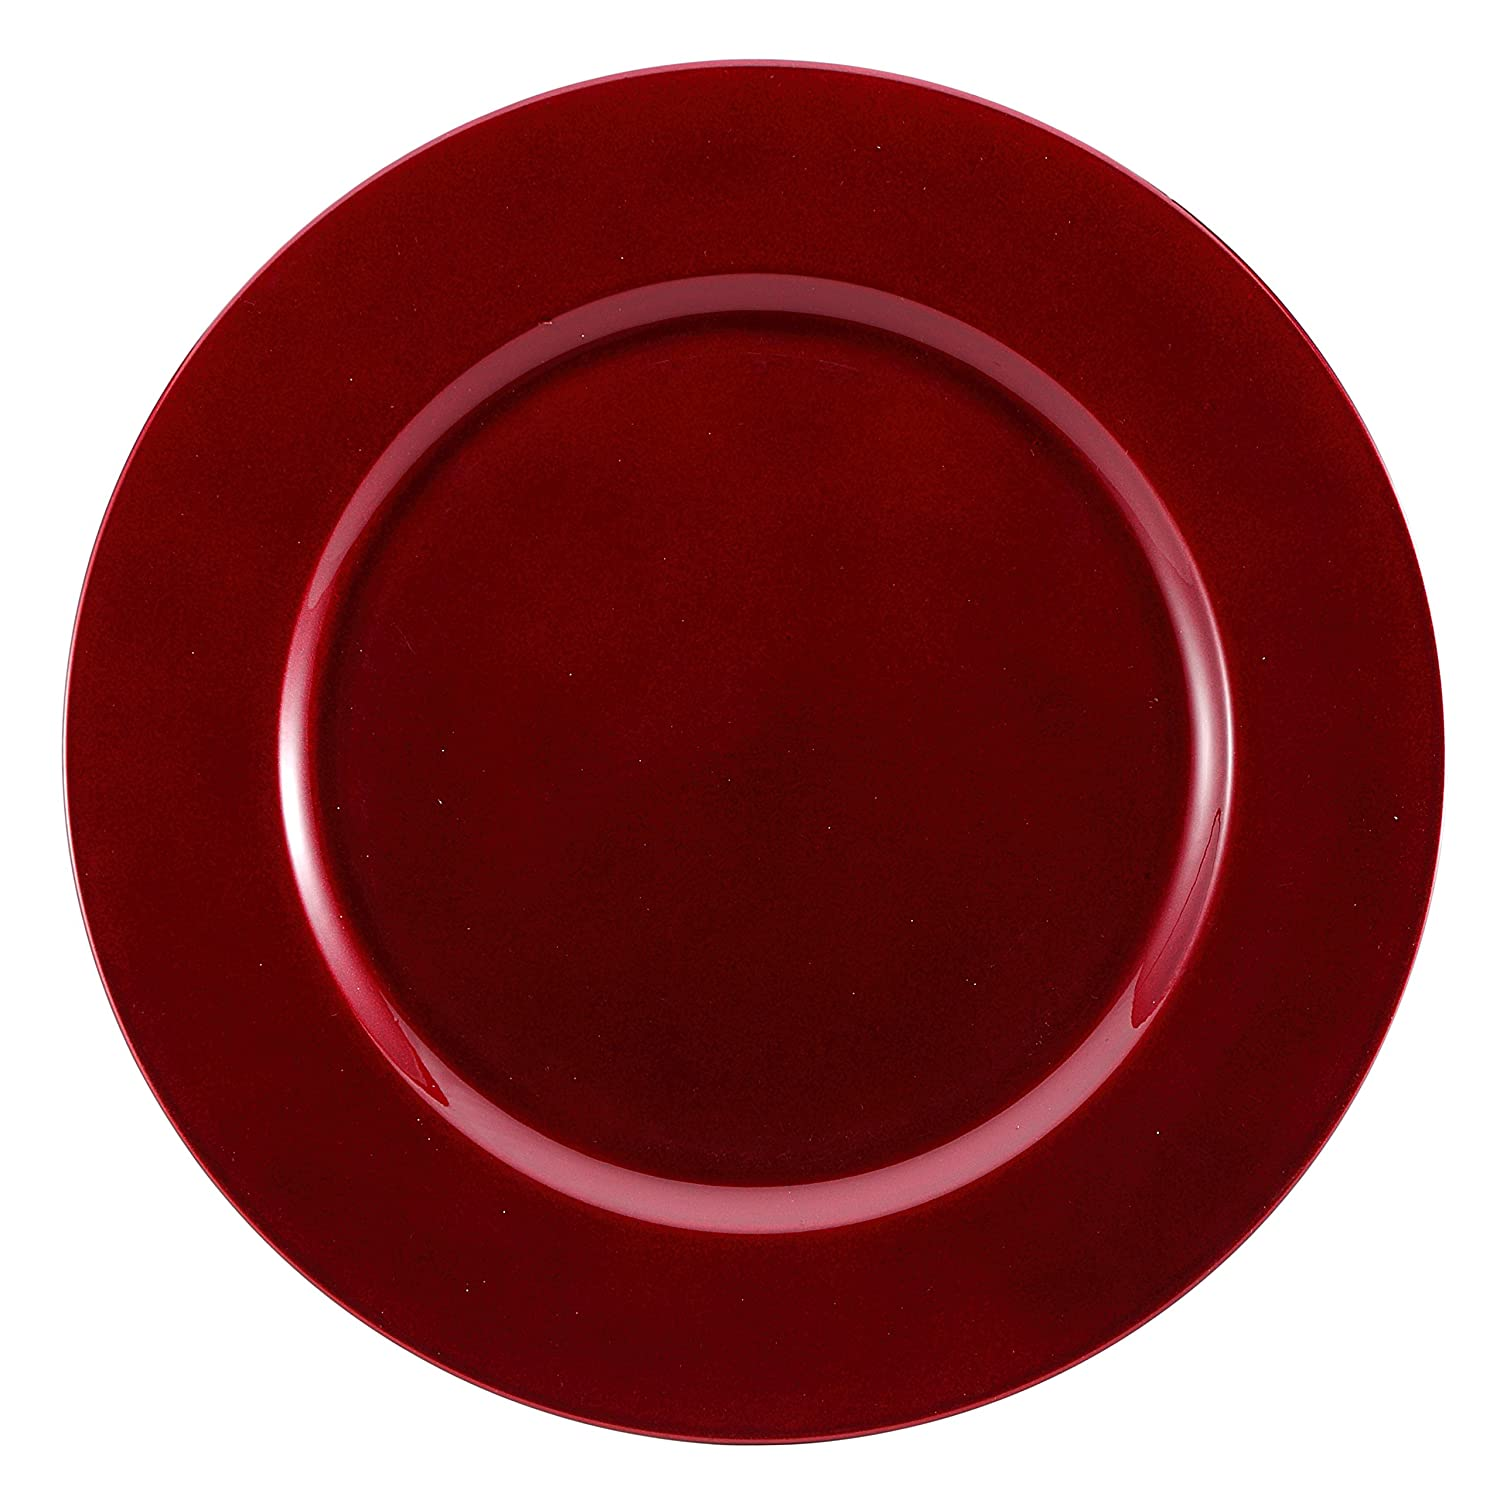 Brunchfill Charger Plates Decorative Underplates  Round  Square  Gold   Silver  Red  Black (plain Red  Round Charger Plate  33 Cm, 8):  Amazon: